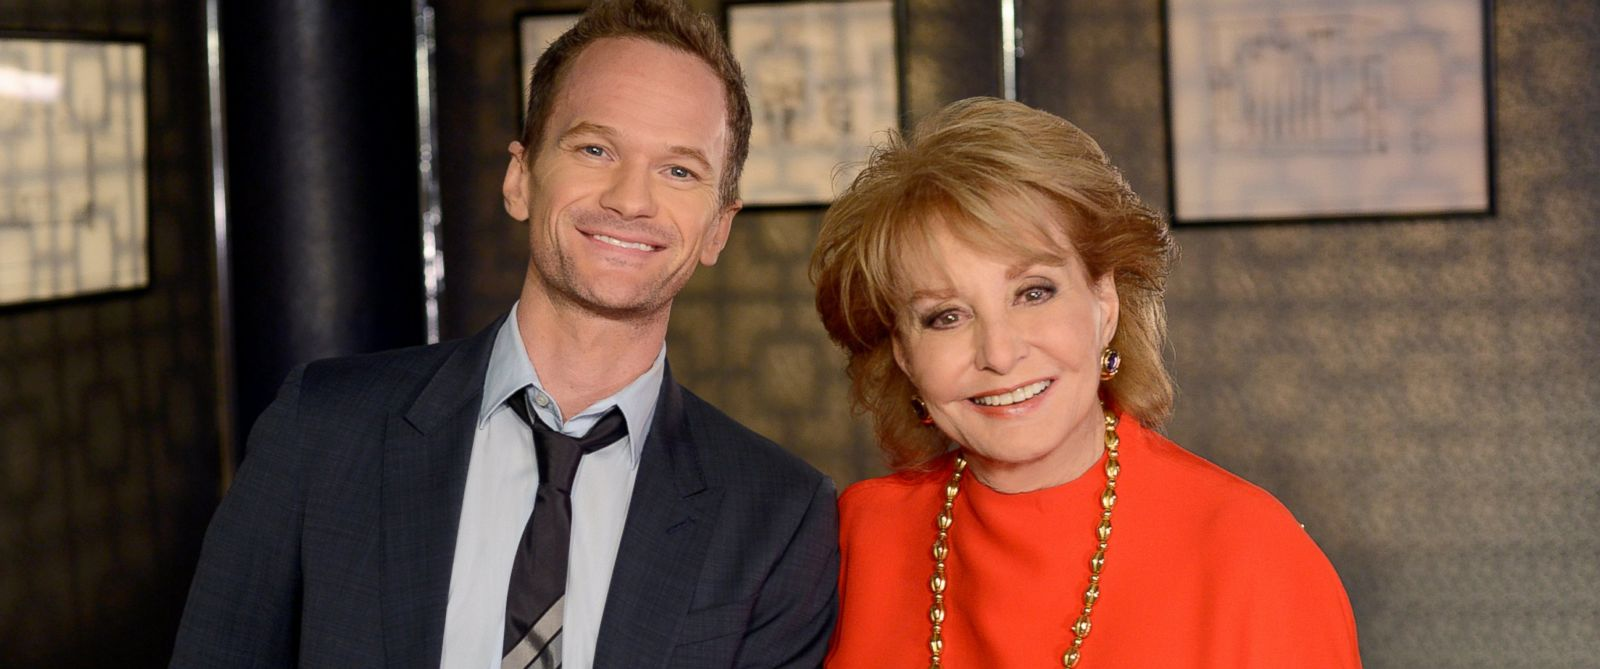 """PHOTO: Barbara Walters returns to primetime with her popular long-running special, """"Barbara Walters Presents: The 10 Most Fascinating People of 2014."""""""